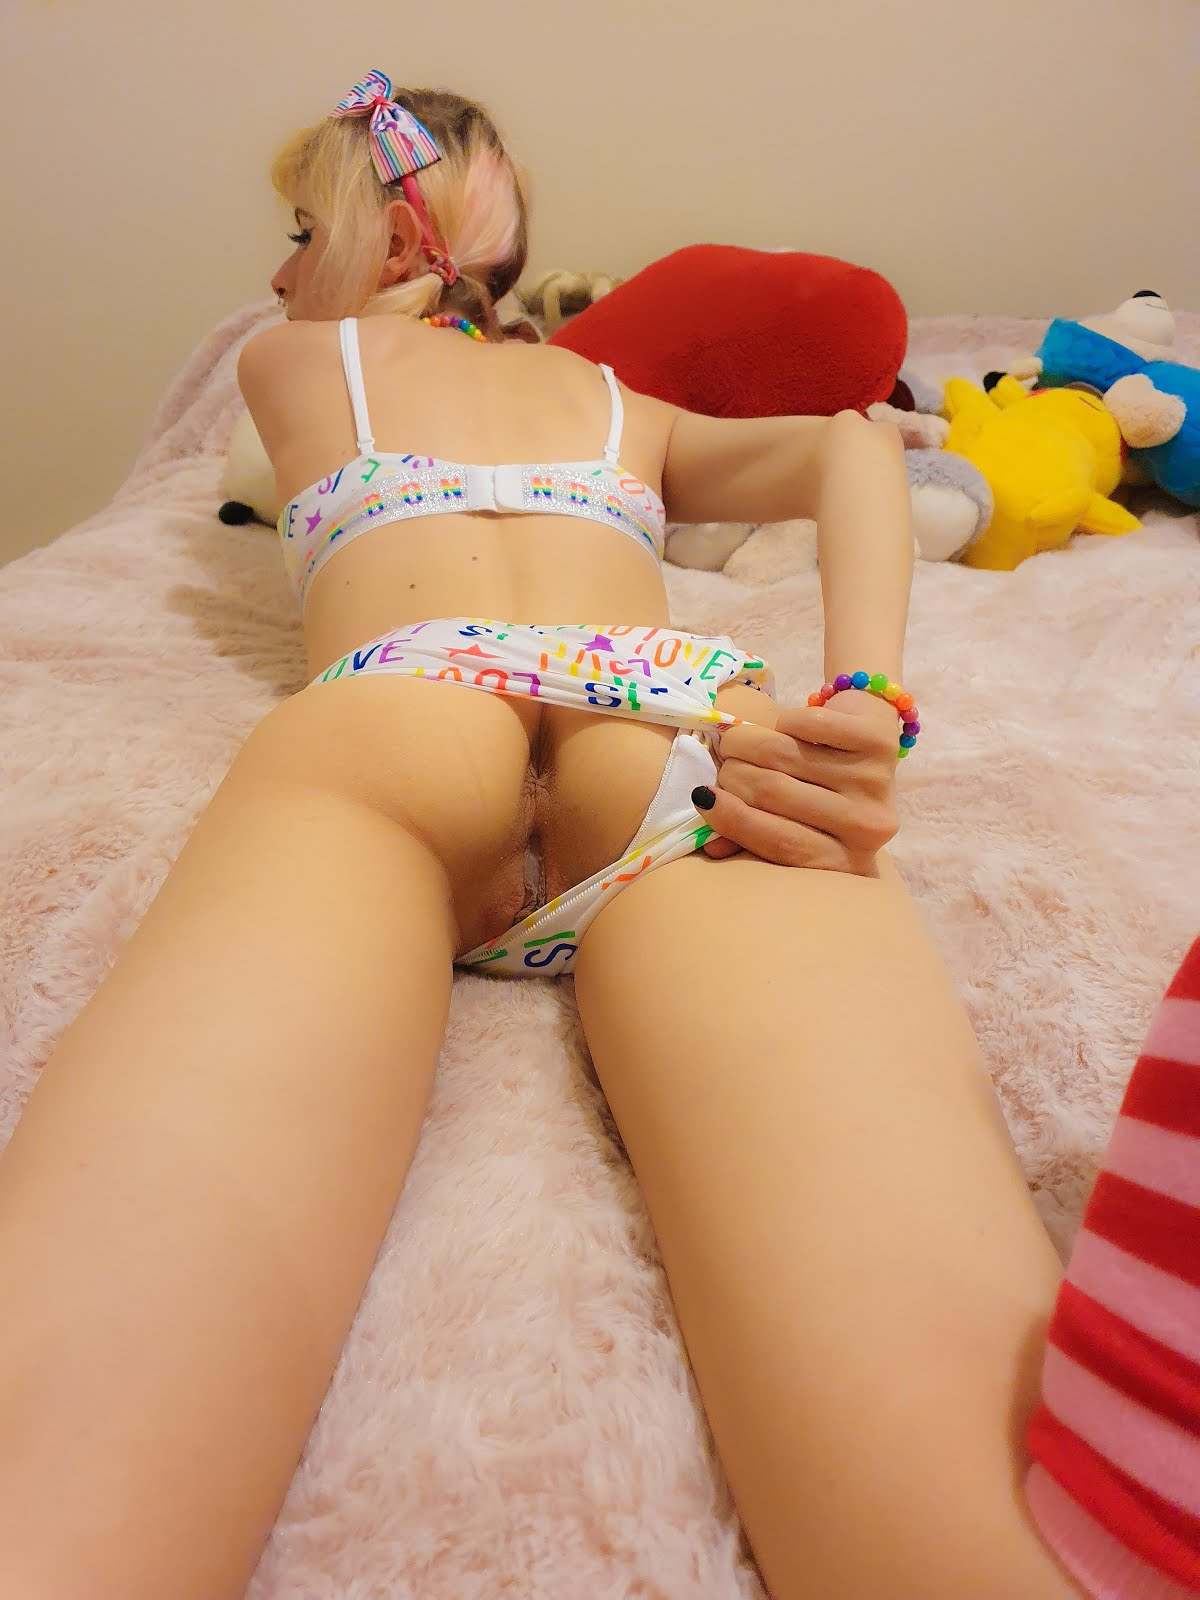 sophie dee squirt solo tube search videos